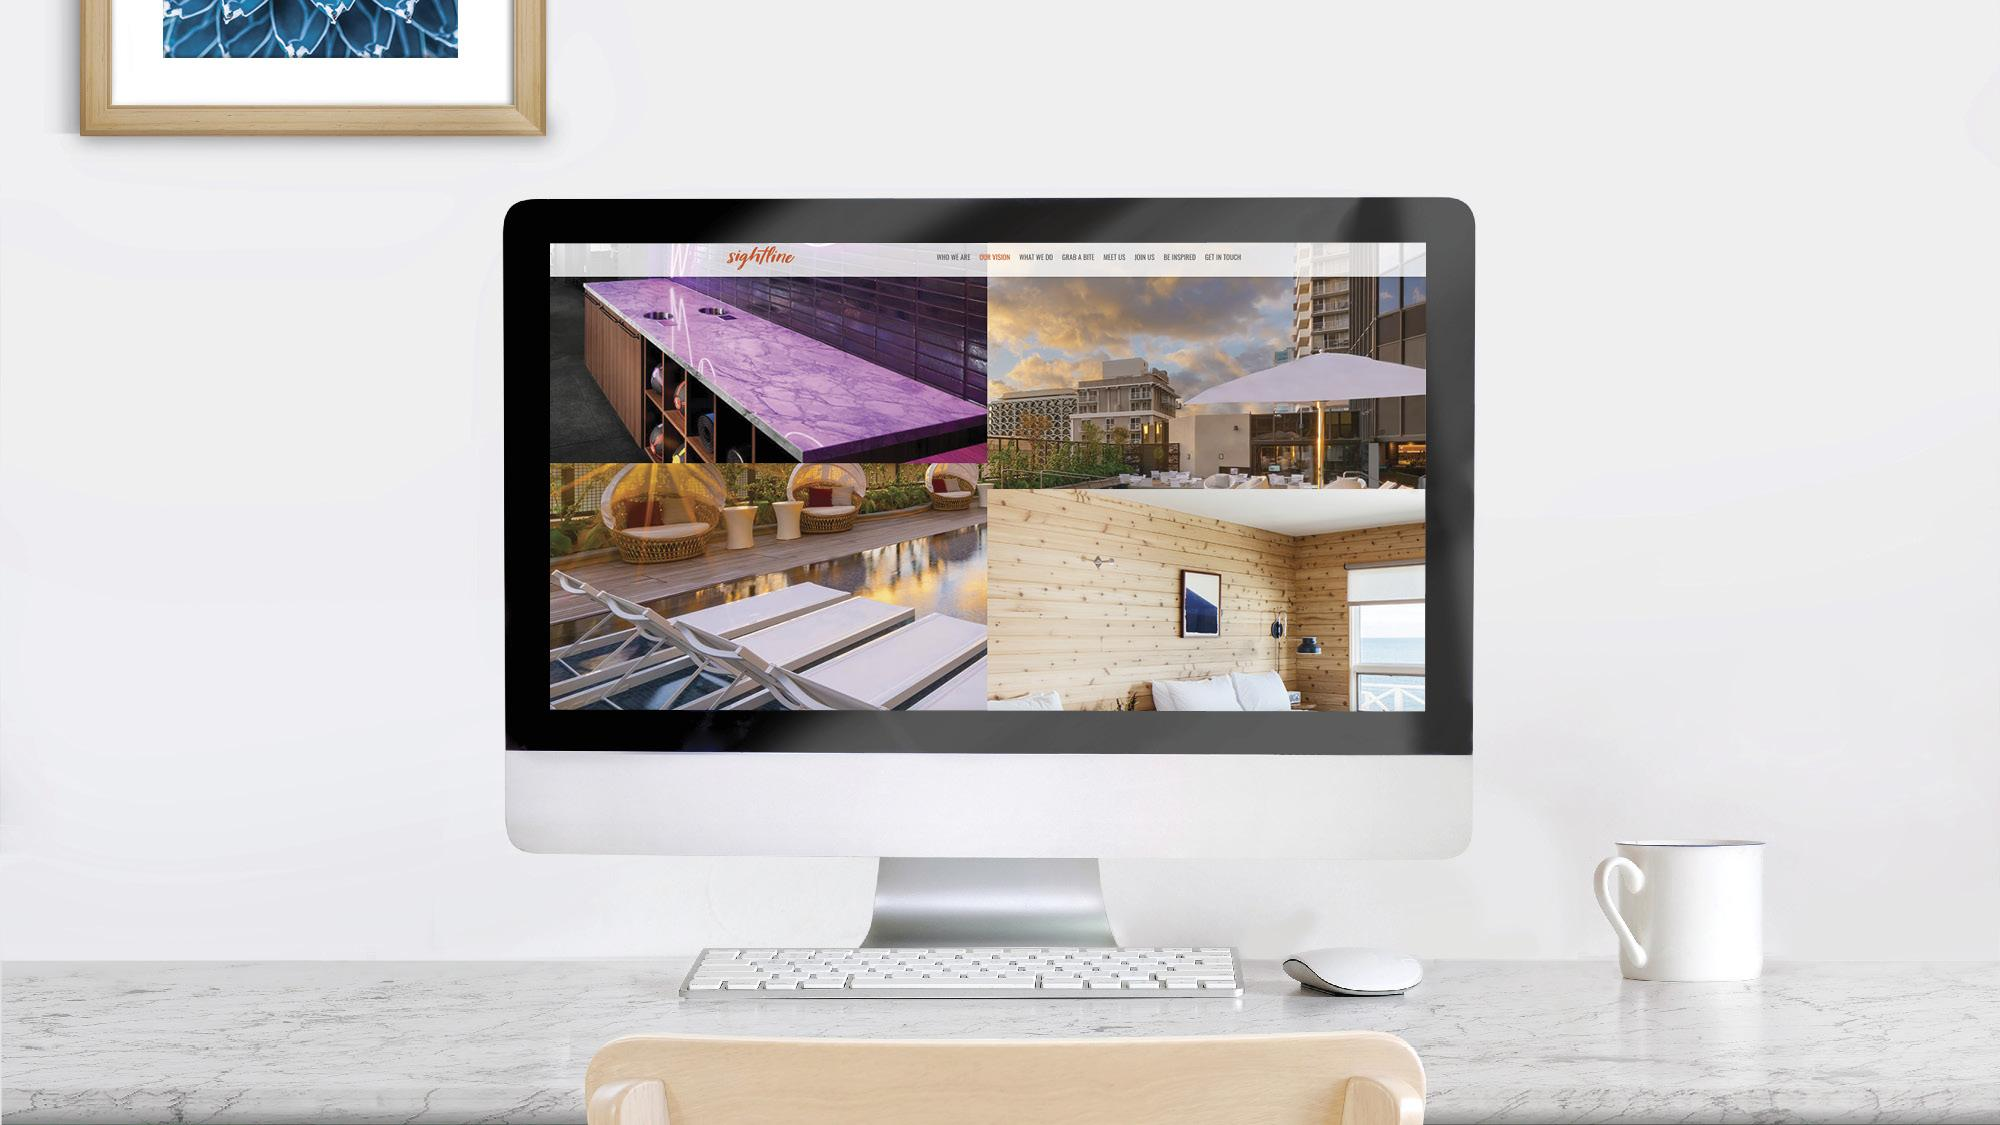 Computer with hotel images